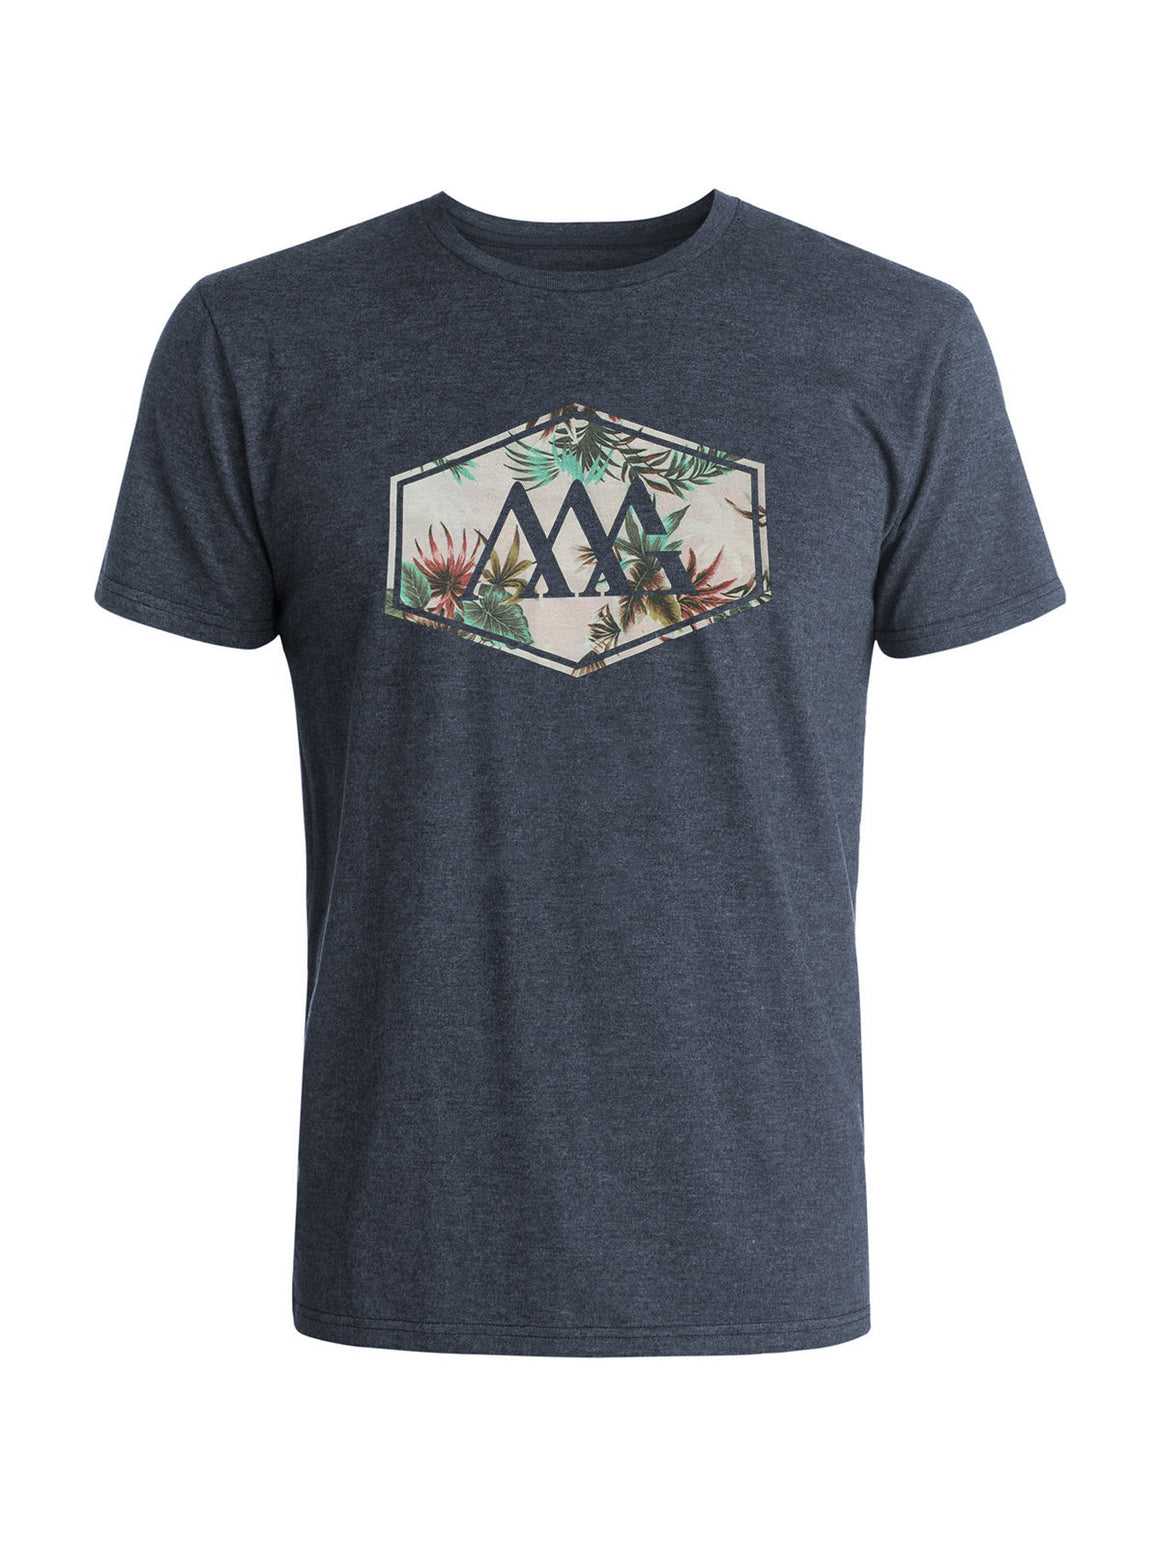 Hex Aloha Tee Shirt - Navy Hea (Hawaiian Tan)